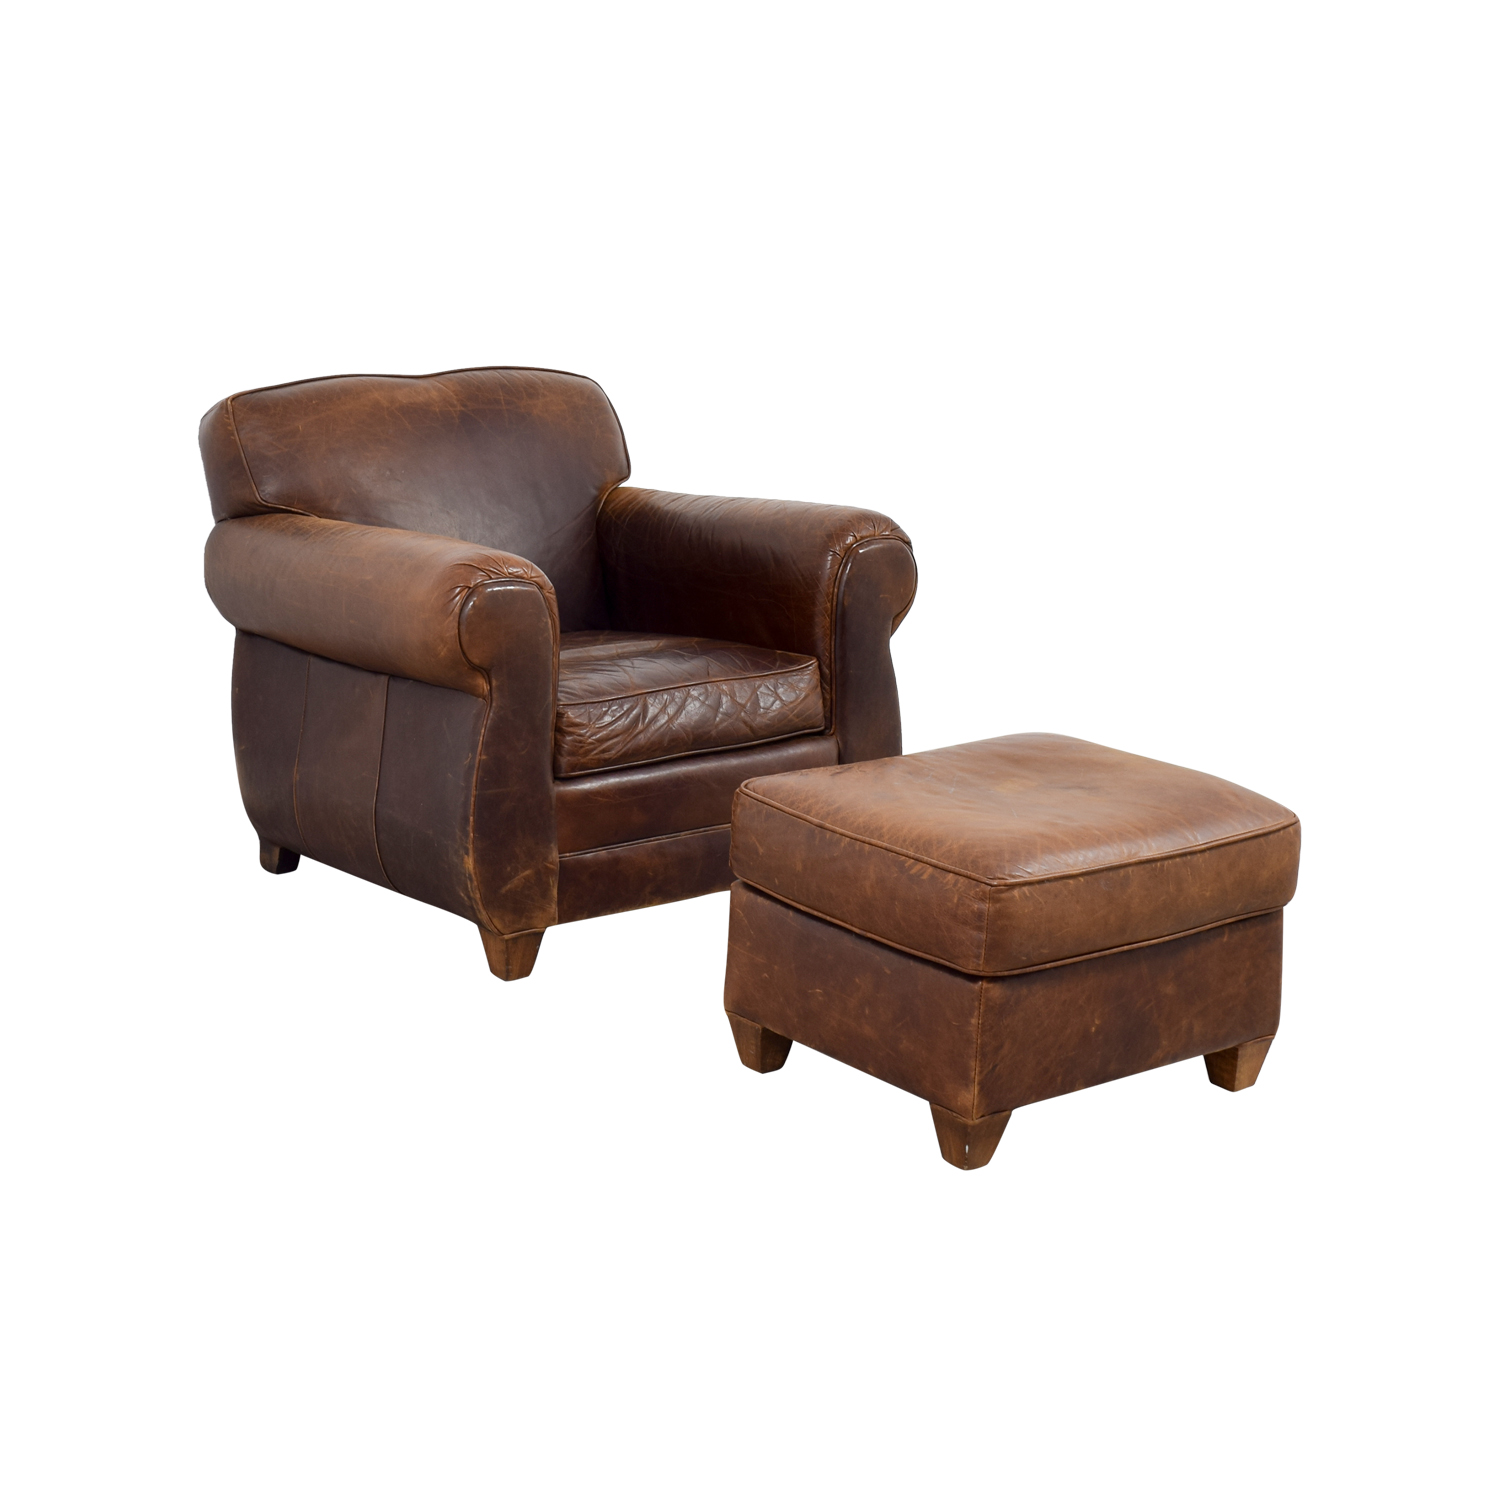 64 OFF Restoration Hardware Restoration Hardware 1940s Moustache Leather Chair And Ottoman